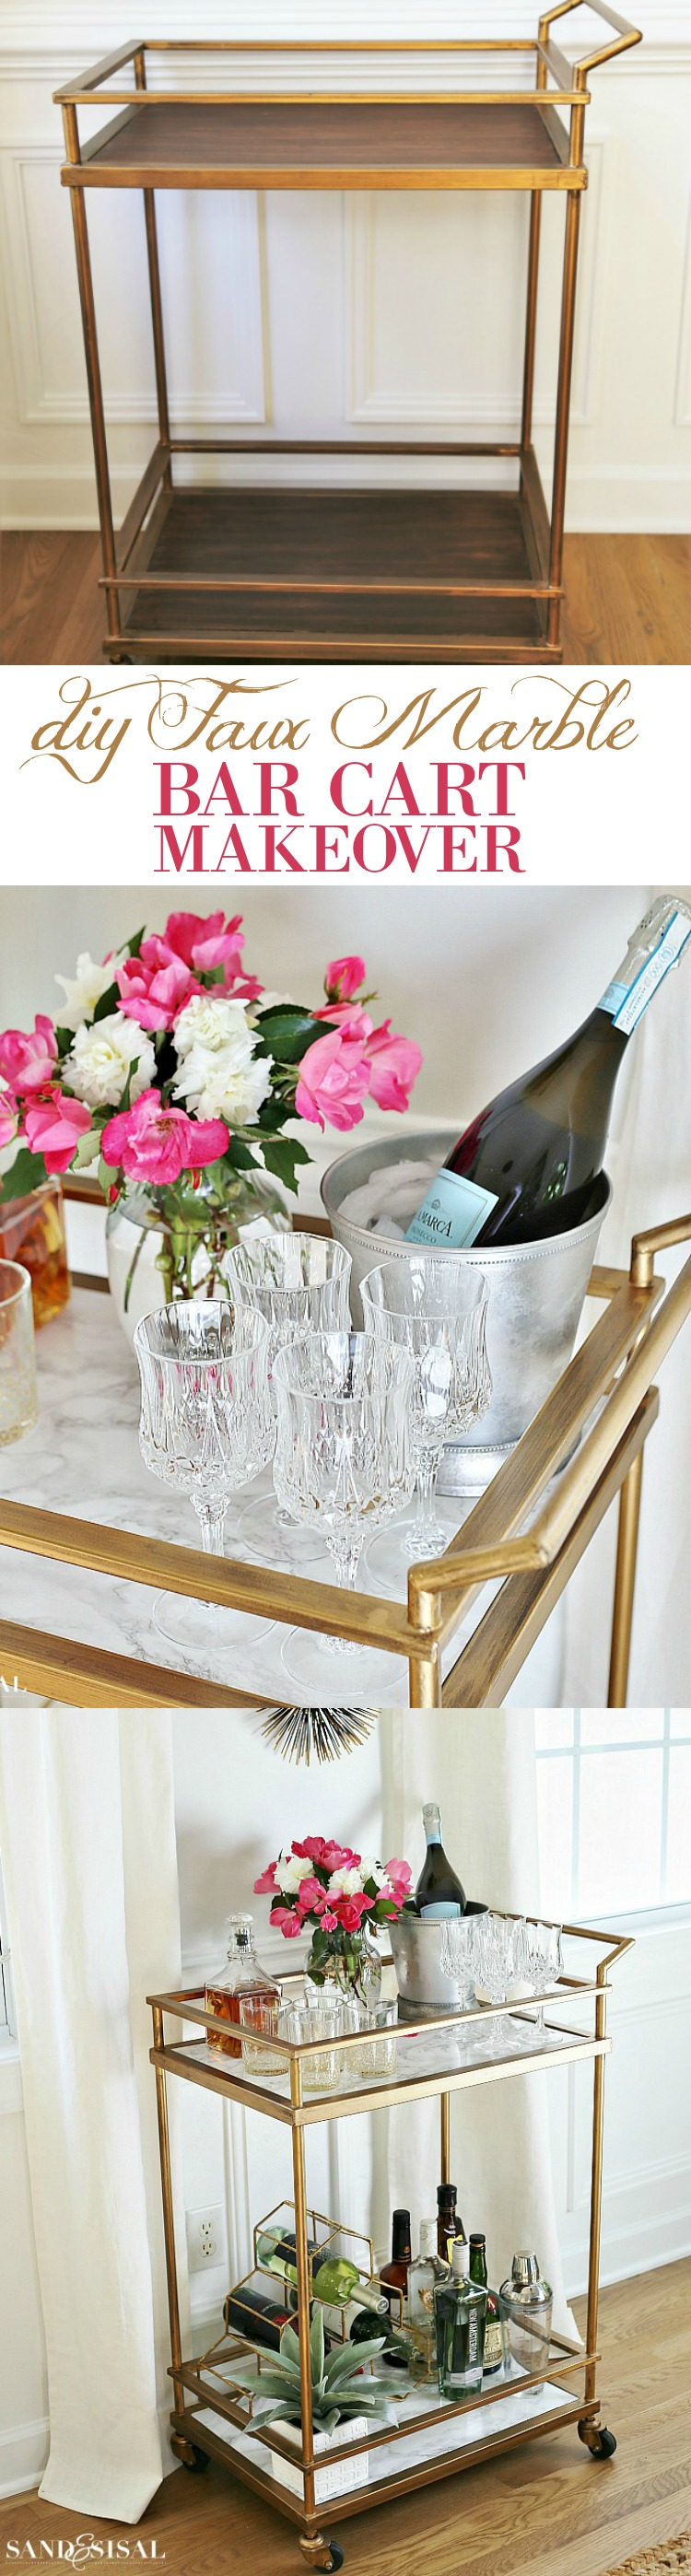 diy-faux-marble-bar-cart-makeover-gold-bar-cart